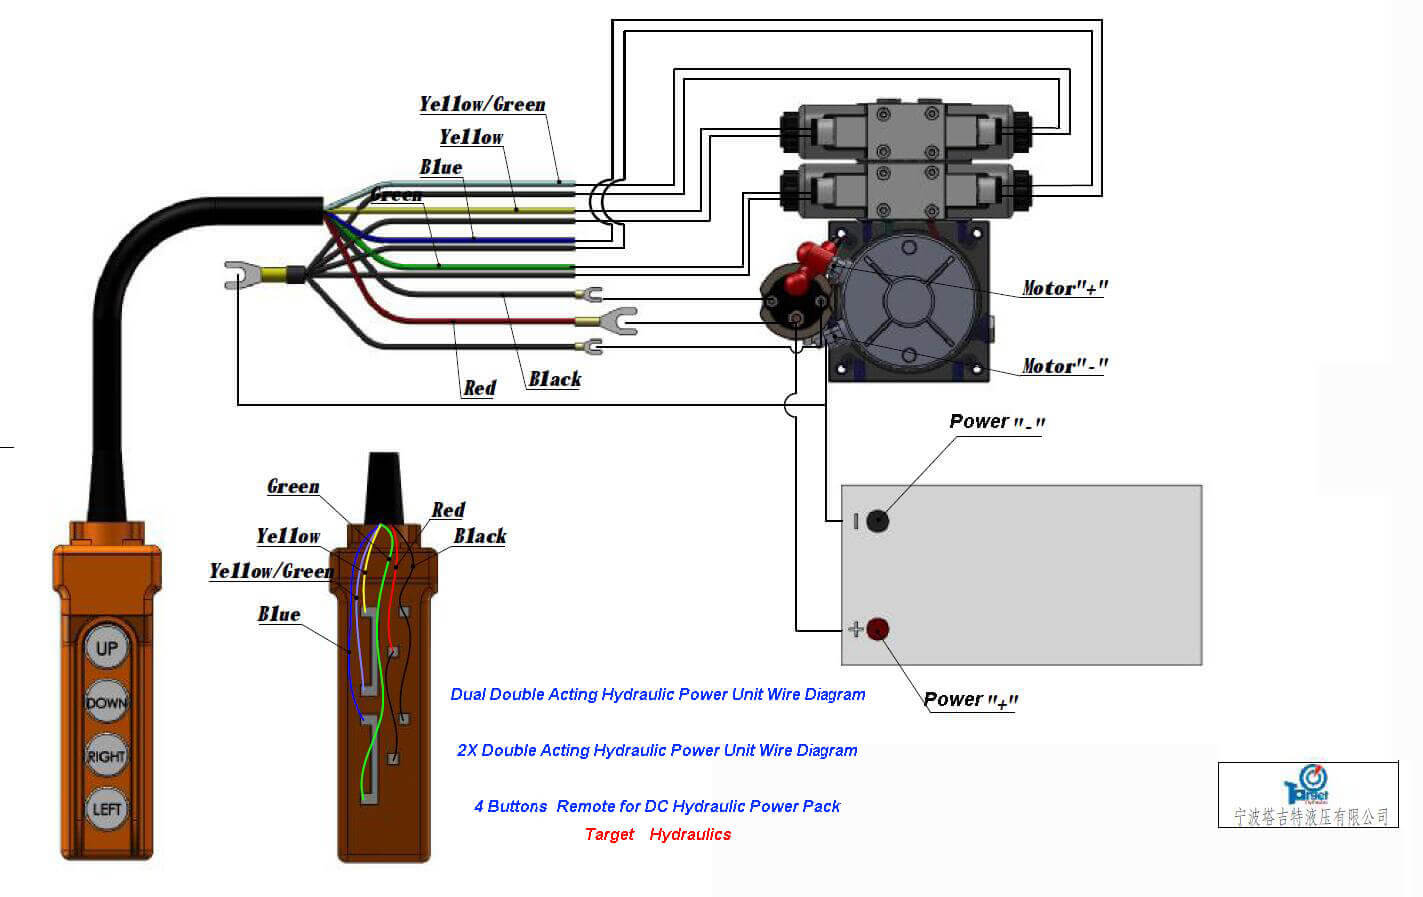 hight resolution of how to wire hydraulic power pack power unit diagram design 110v hydraulic valve wiring diagram